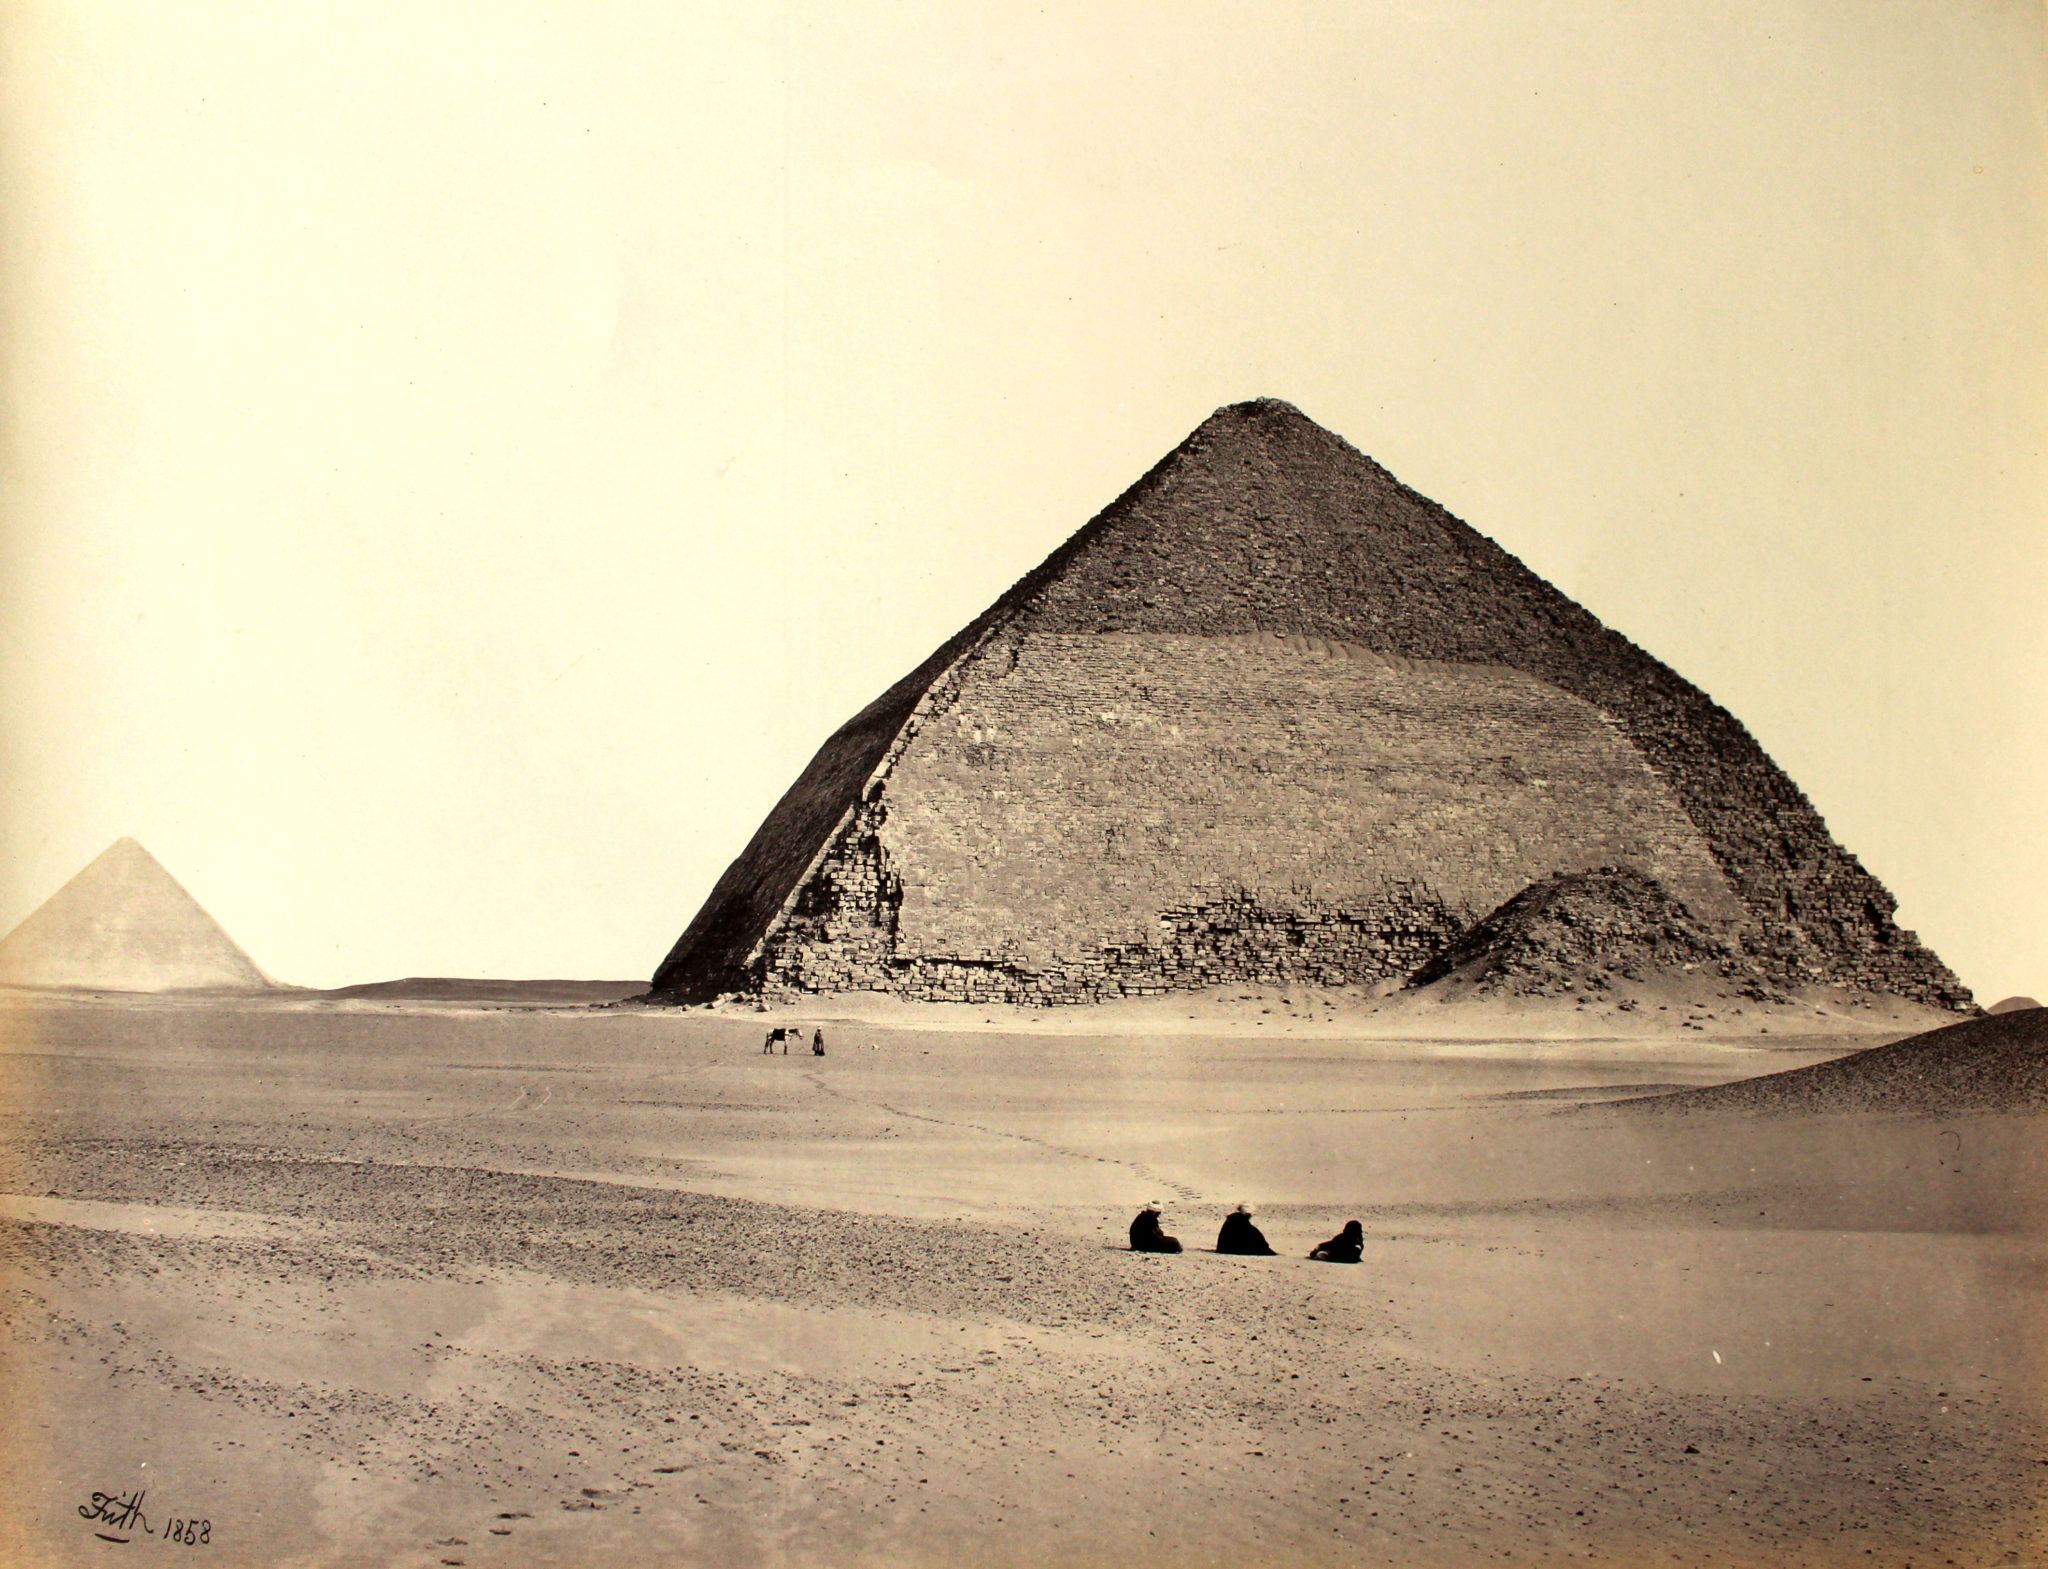 Francis Frith. The Pyramids of Dahshur, Egypt. c.1858.